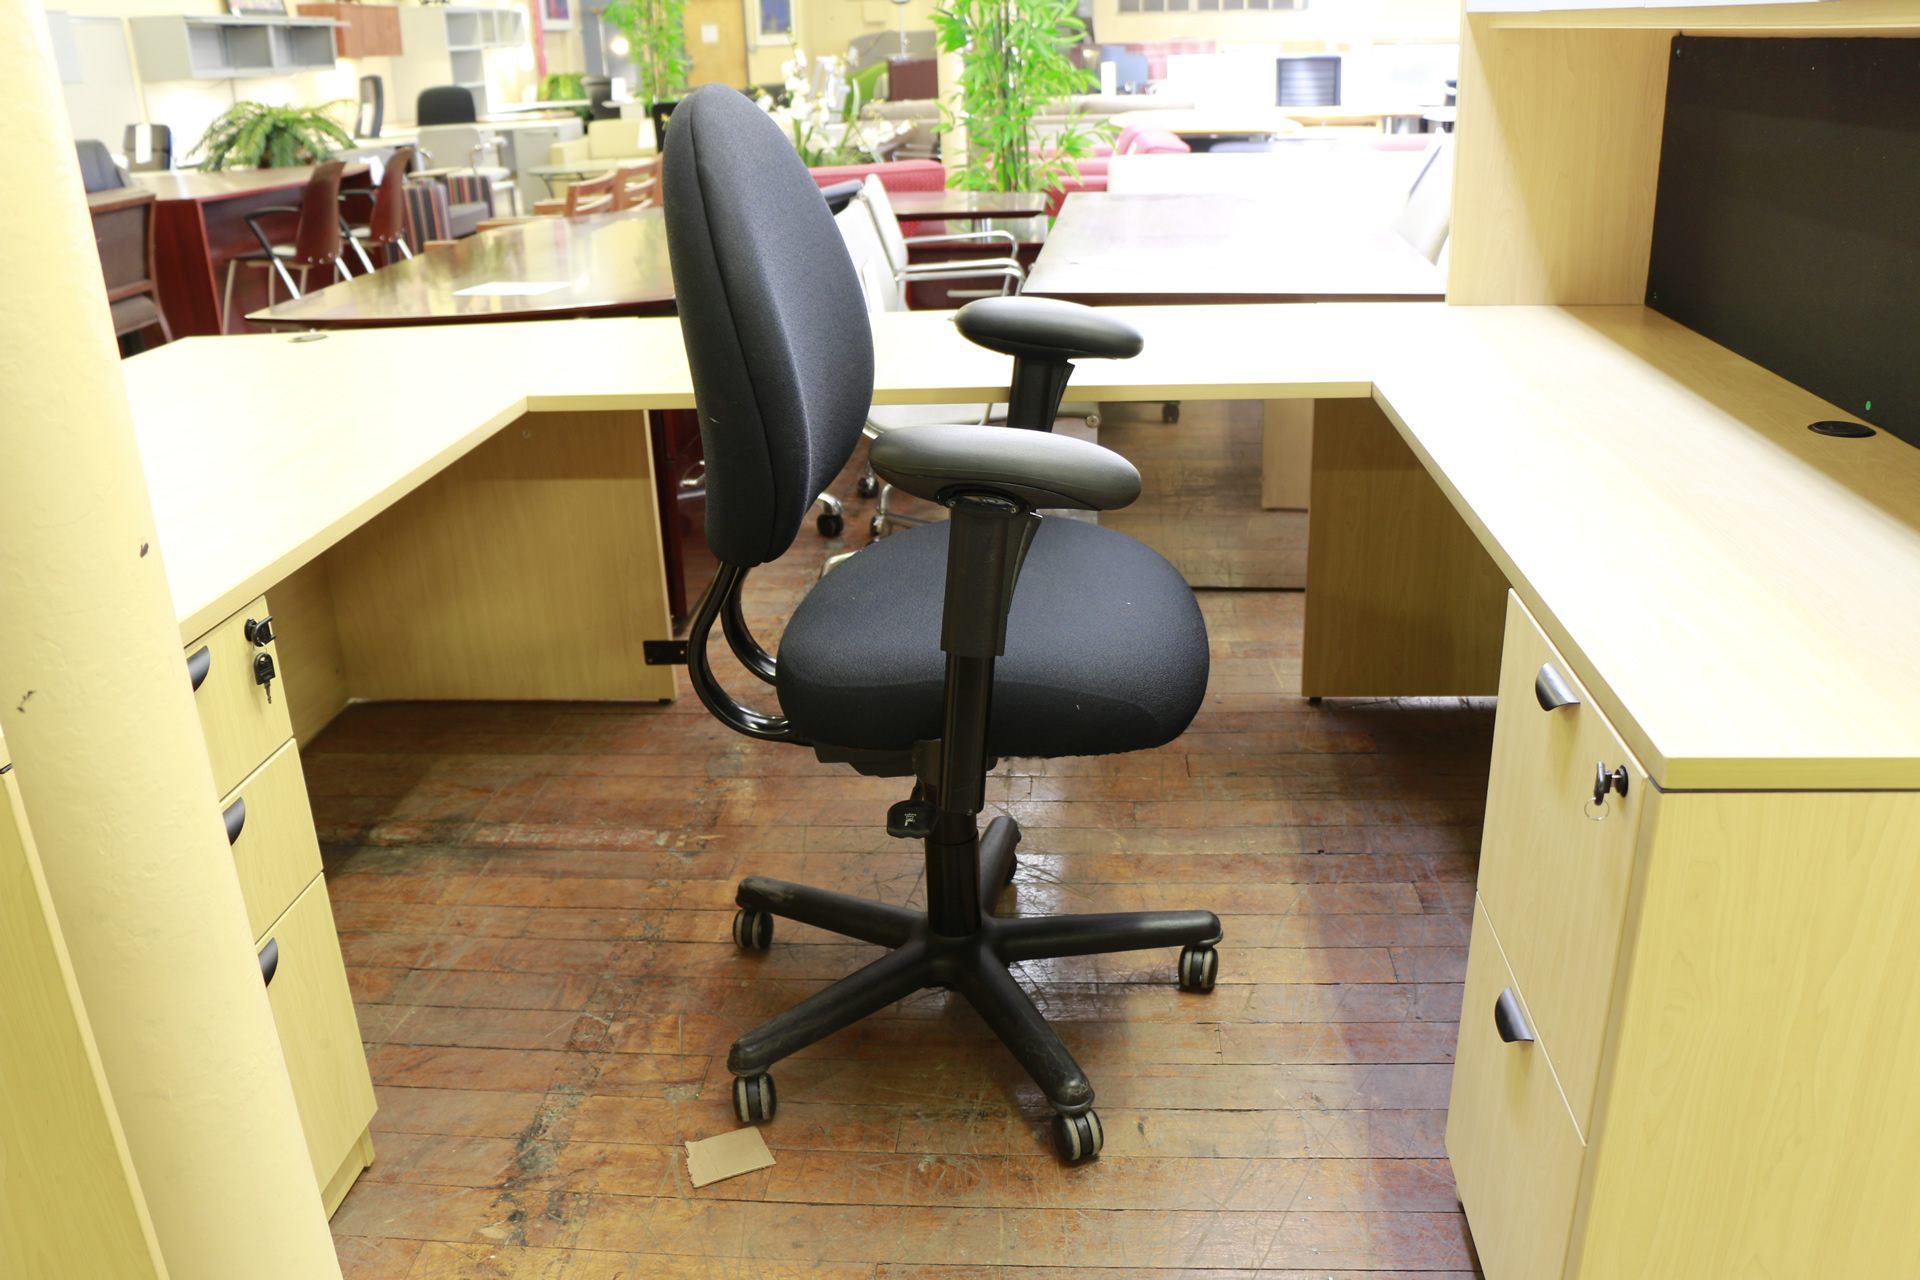 peartreeofficefurniture_peartreeofficefurniture_peartreeofficefurniture_2015-05-15_21-02-37.jpg